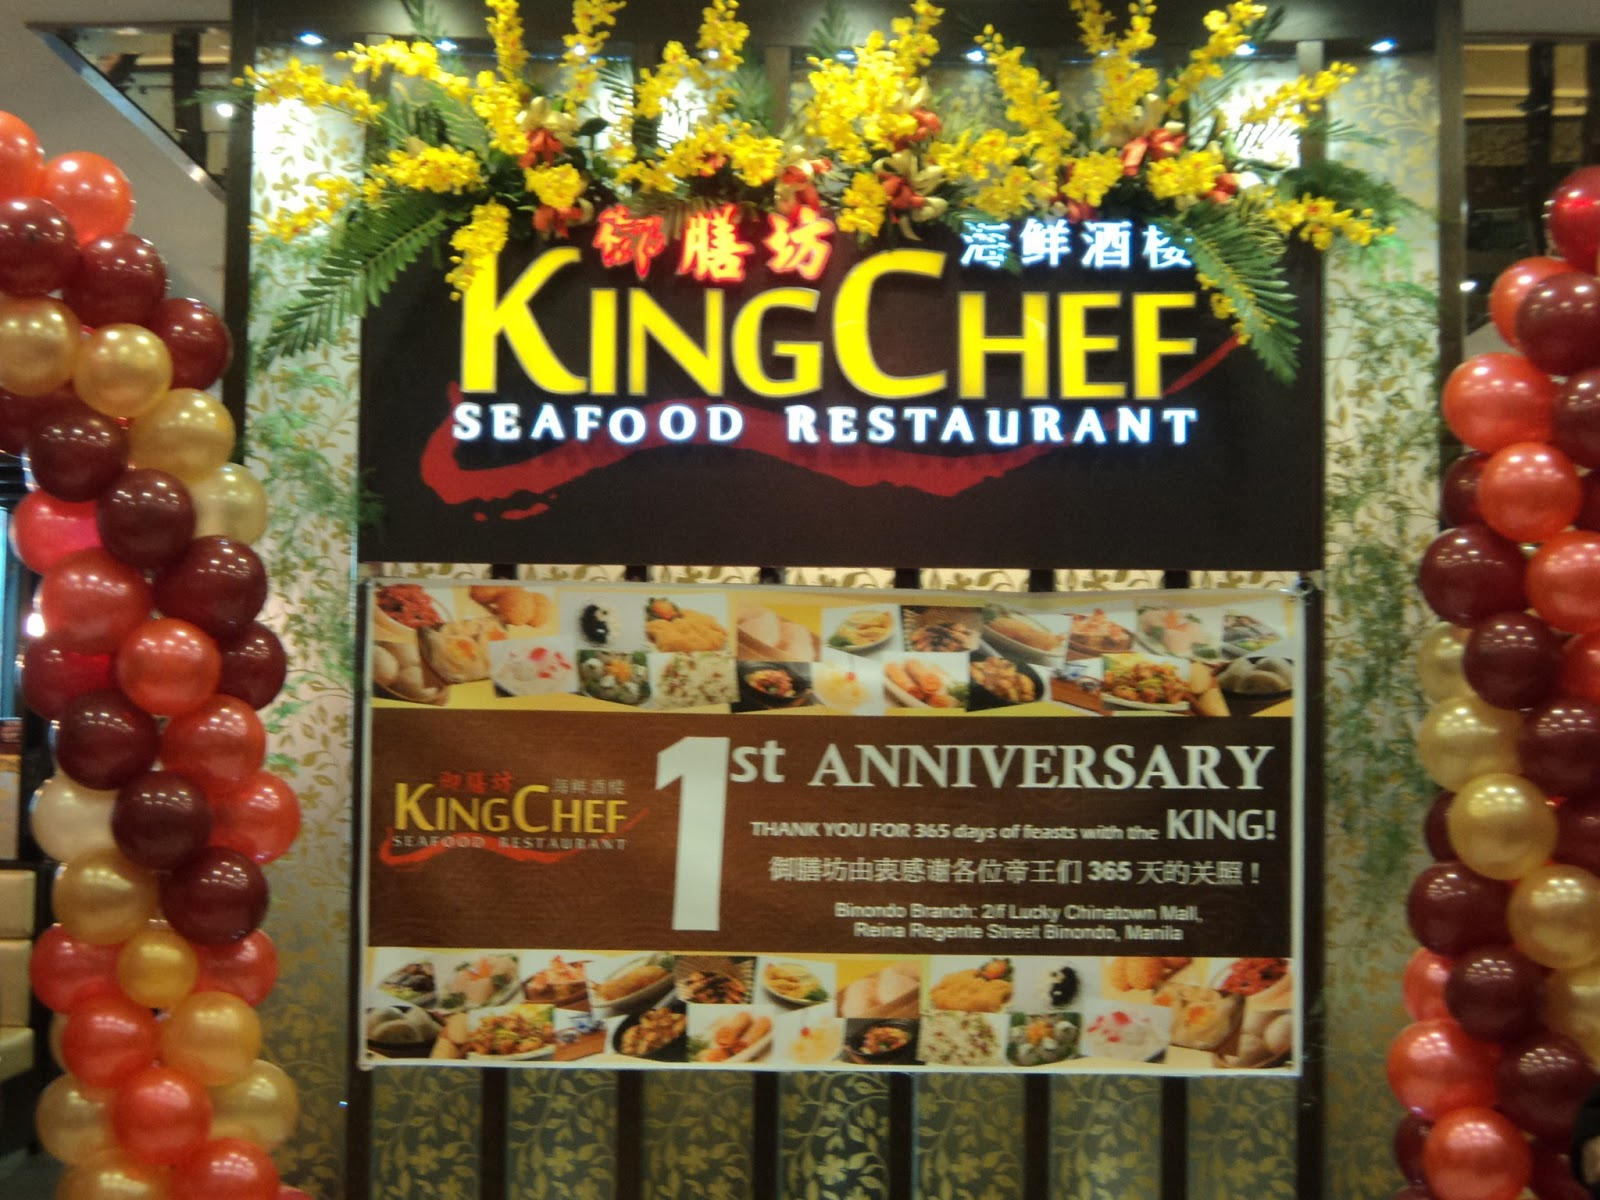 Witty Momsie Anniversary Special Of King Chef Seafood